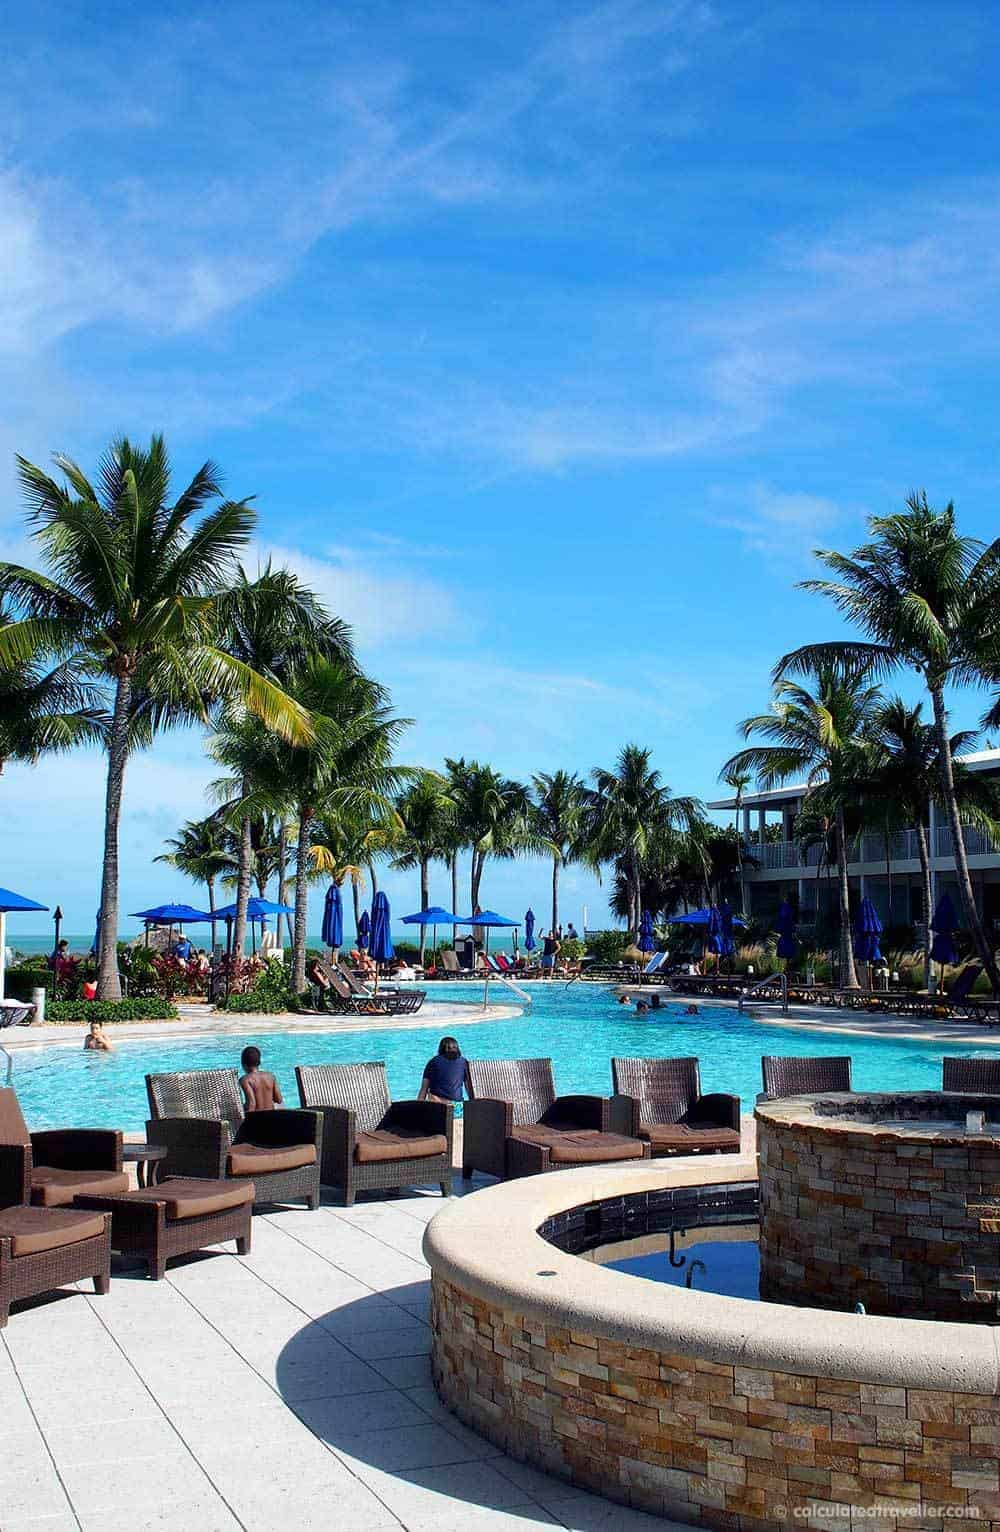 Tranquillity at Hawks Cay Resort Duck Key Florida - Resort Pool. A Review by Calculated Traveller